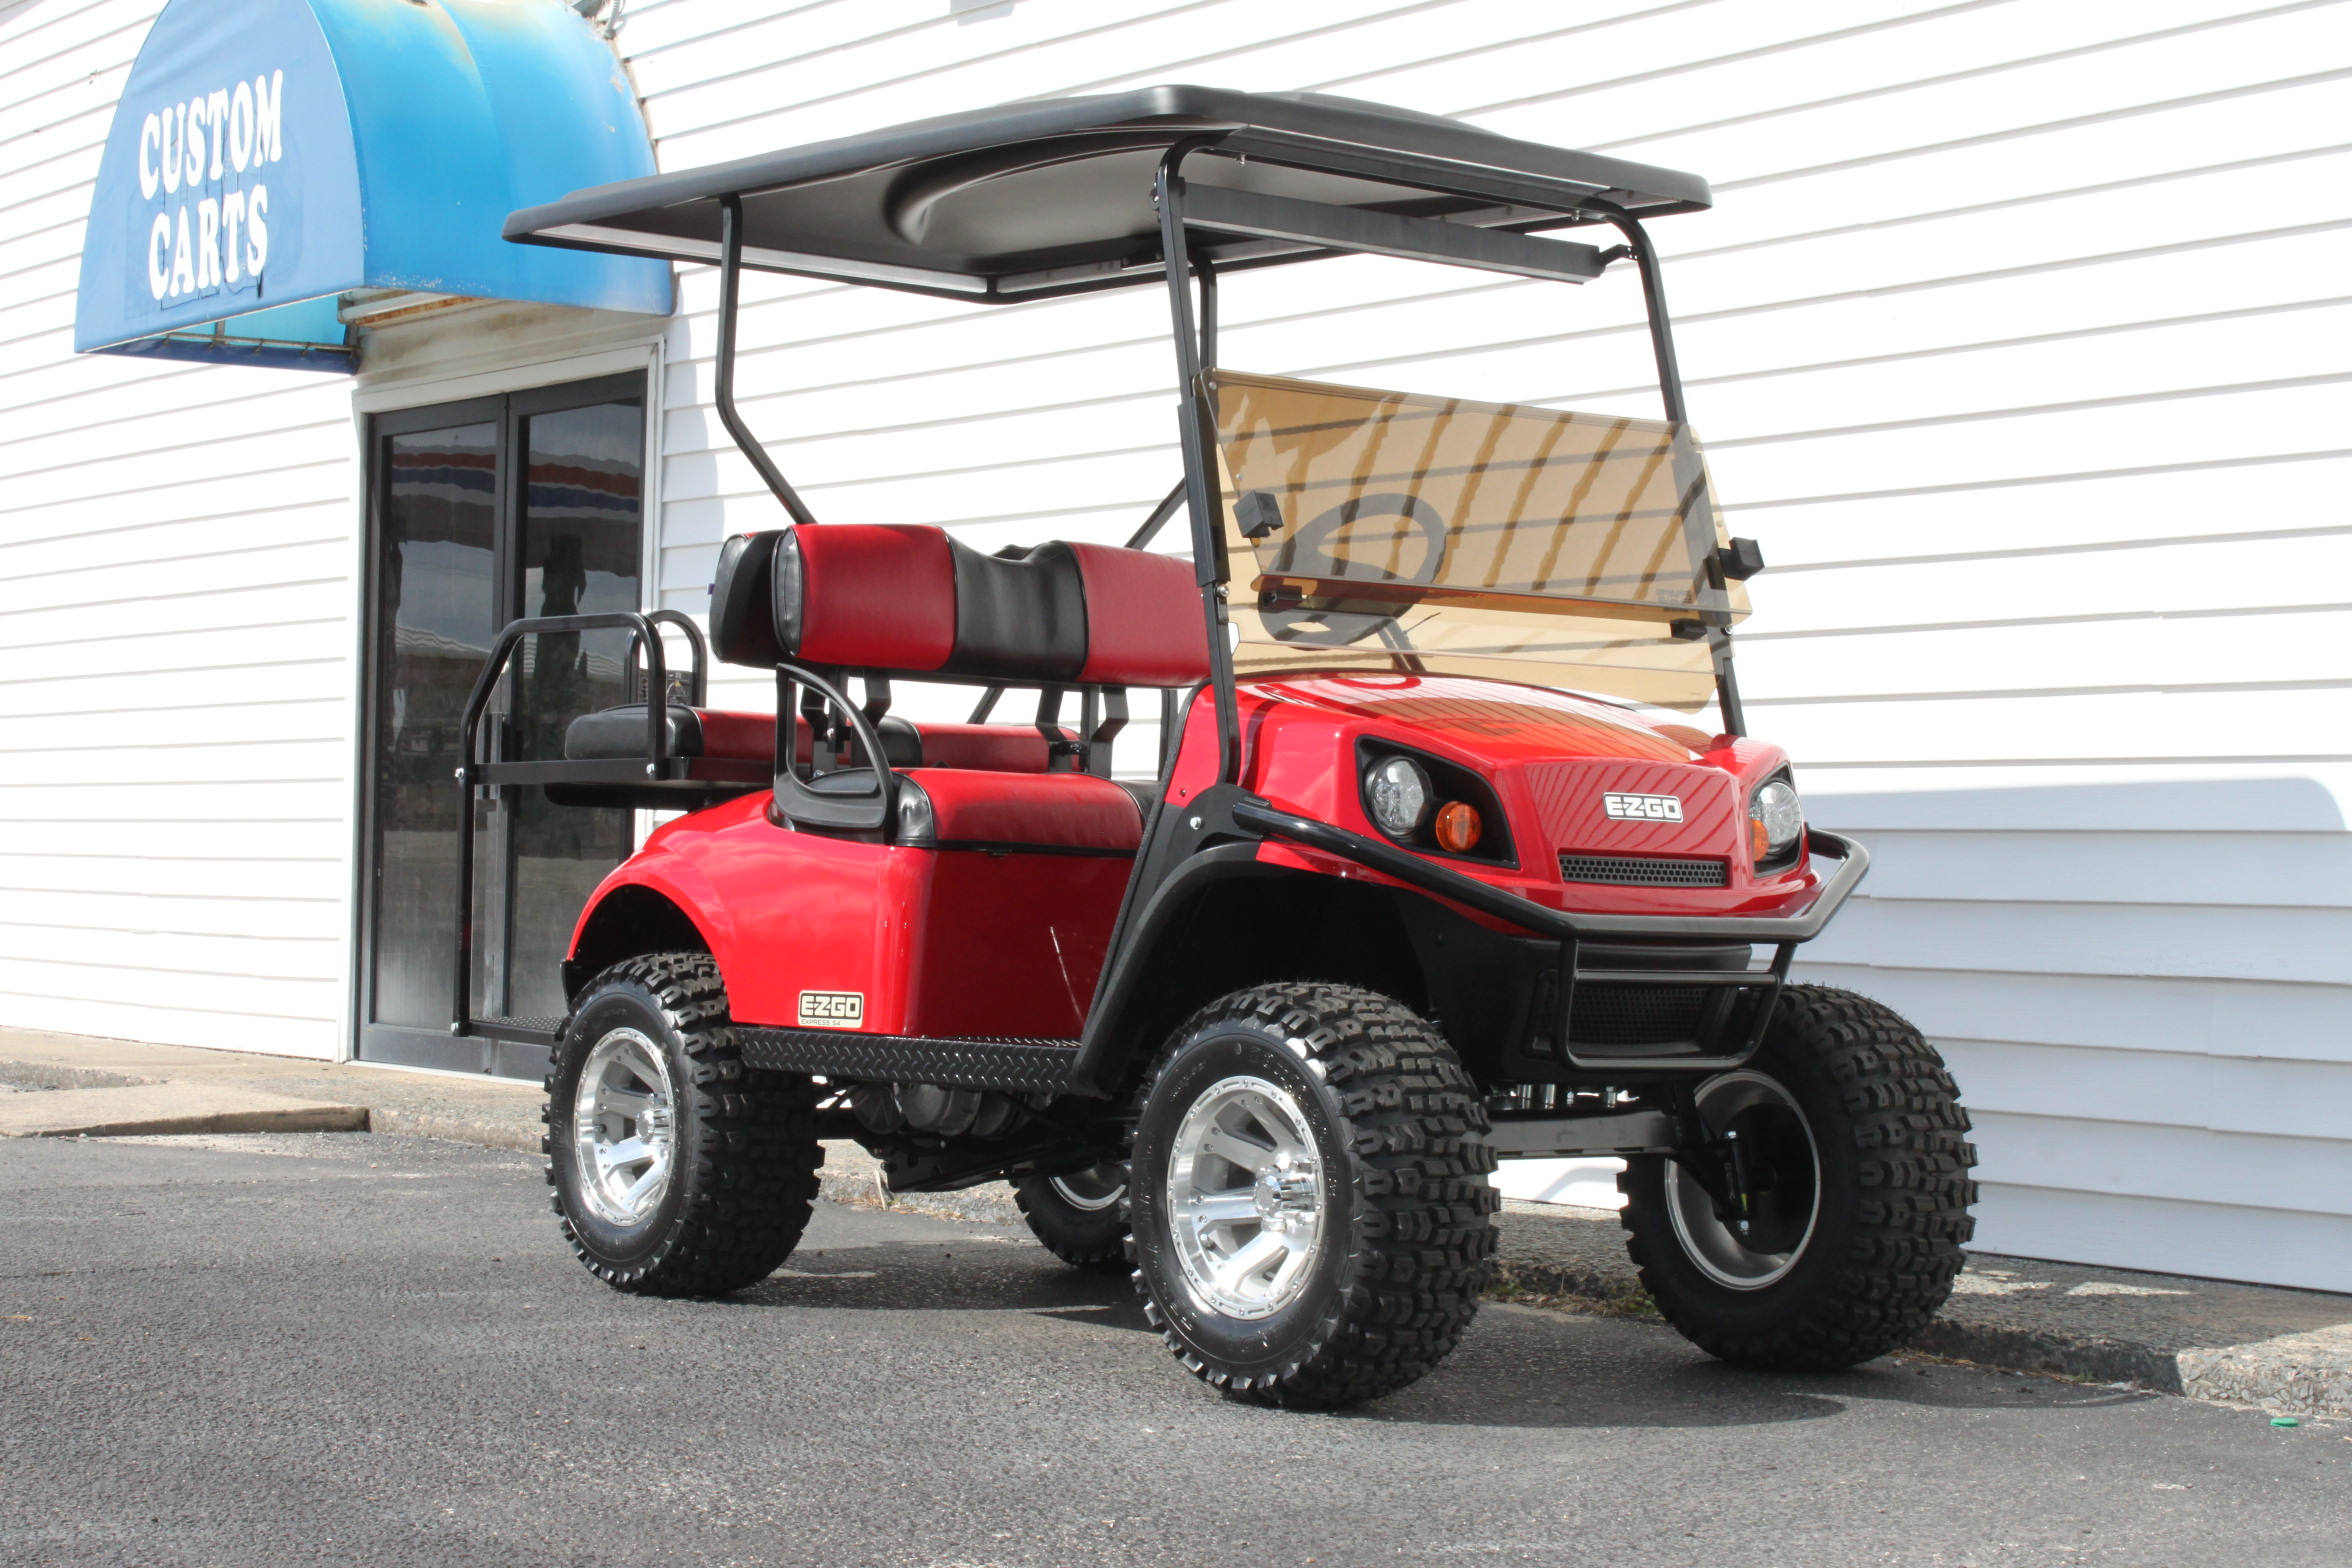 STOCK# 3389204, 2019 E-Z-GO S4 EXPRESS GAS GOLF CART